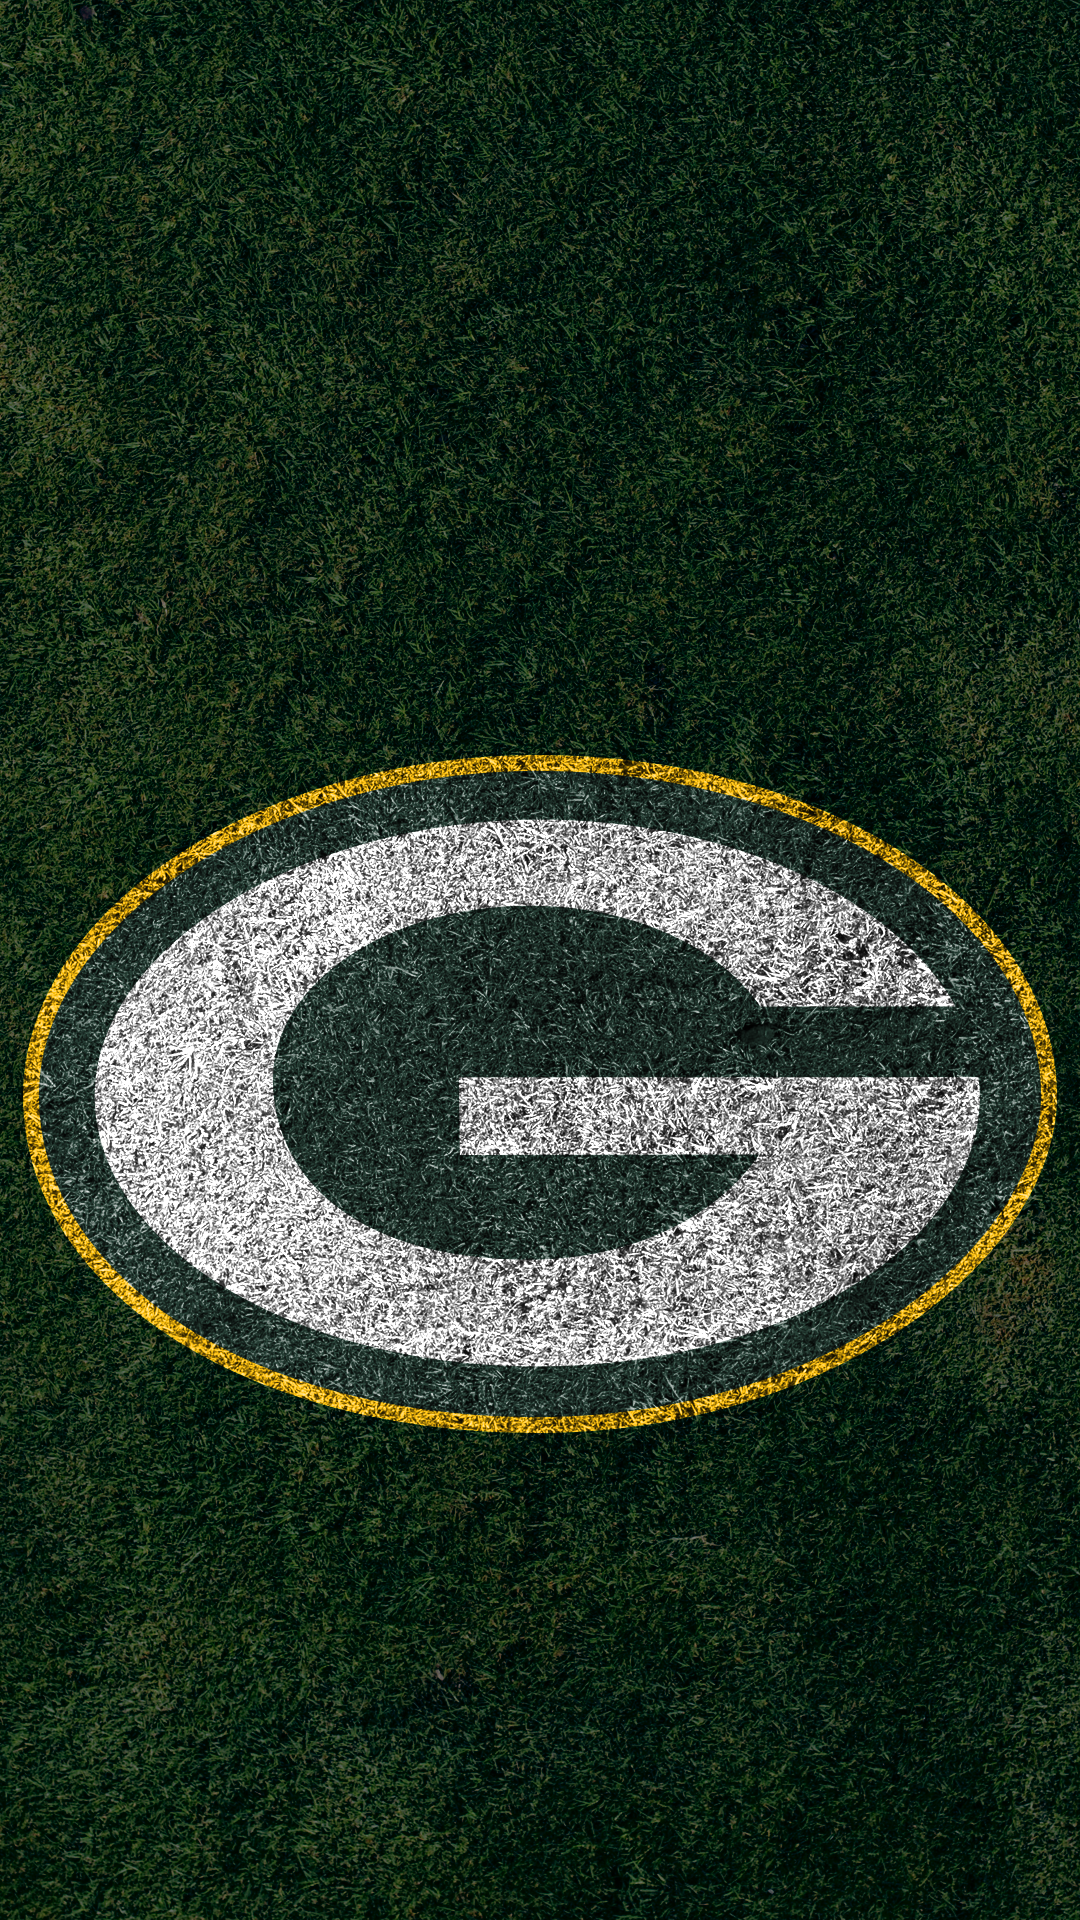 Green Bay Packers Mobile Logo Wallpaper Green Bay Packers Logo Green Bay Packers Wallpaper Green Bay Packers